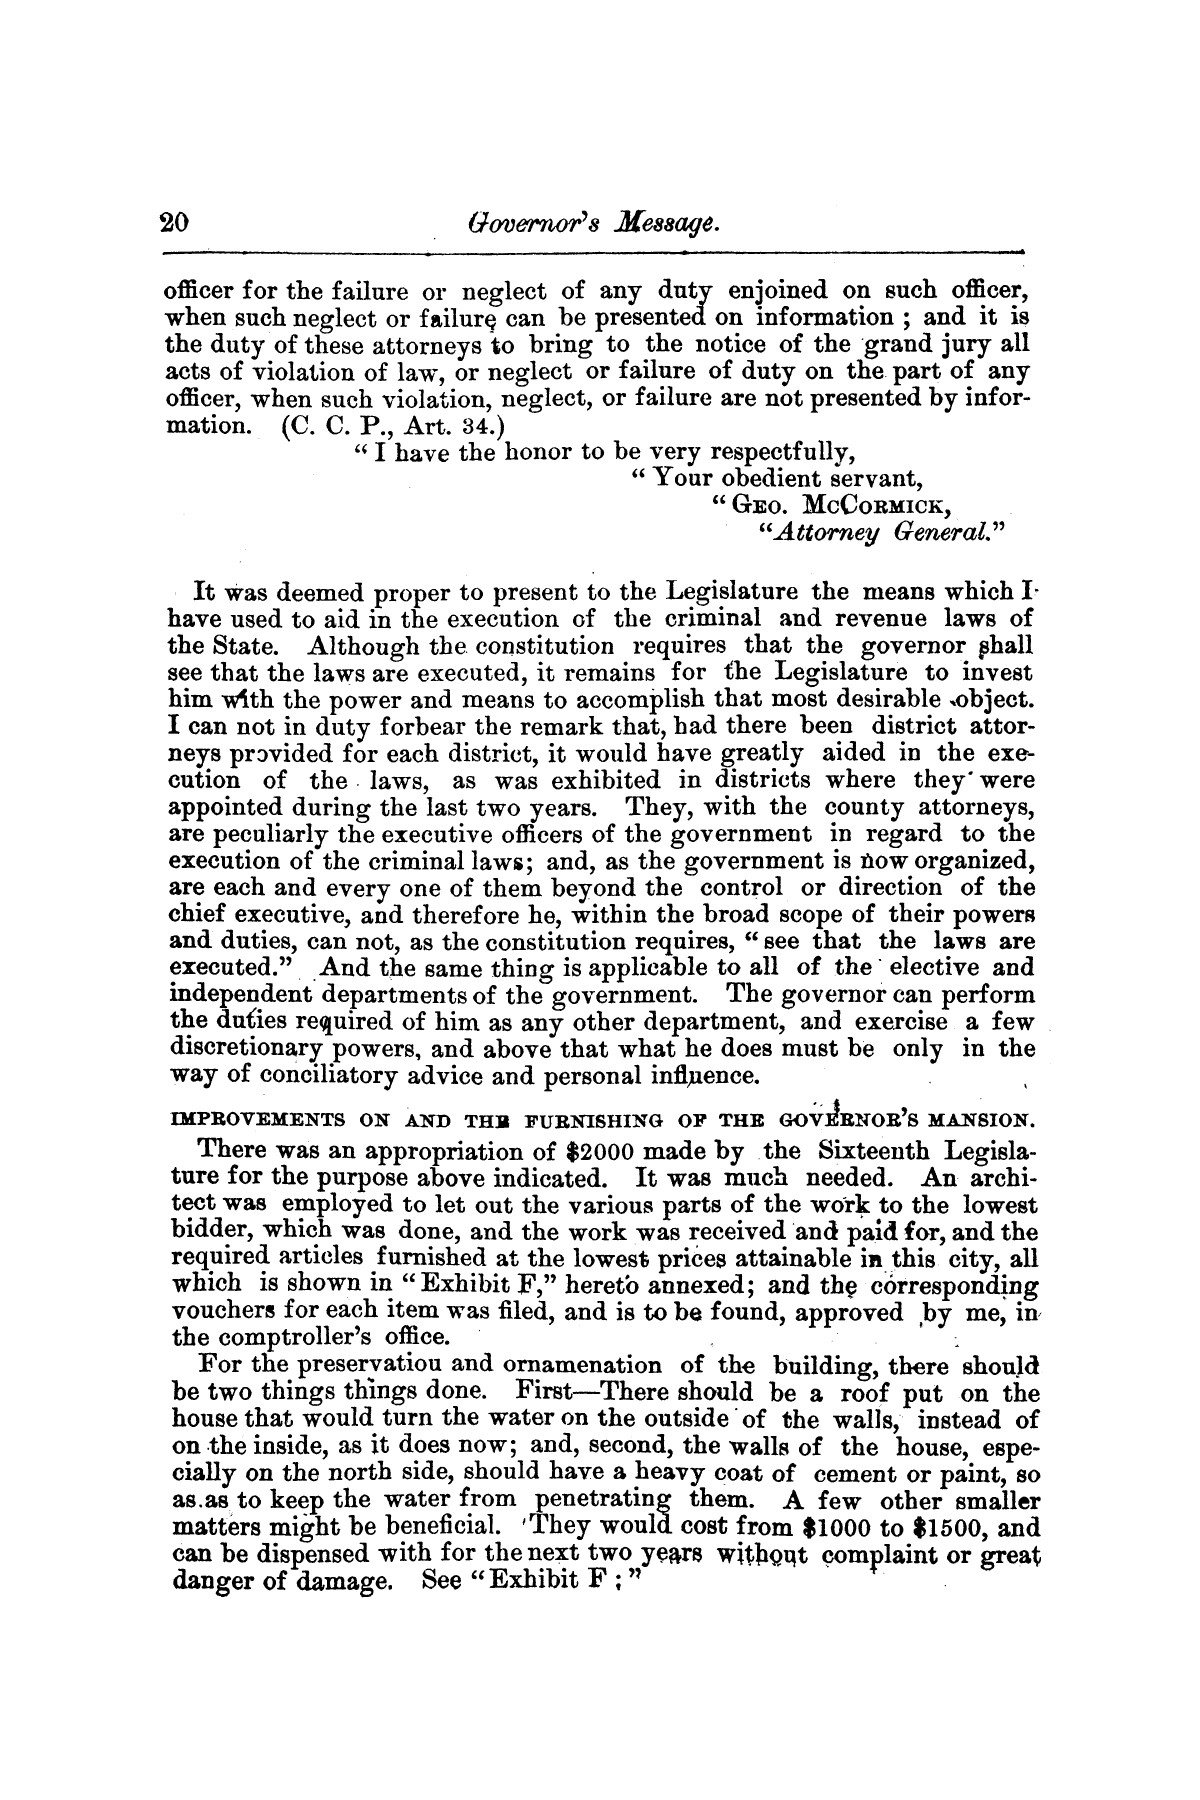 Message of Gov. O. M. Roberts on appropriations and expenditures under the control of the governor to the seventeenth legislature of the state of of Texas, convened at the city of Austin, in regular session, January 11, 1881.                                                                                                      [Sequence #]: 20 of 23